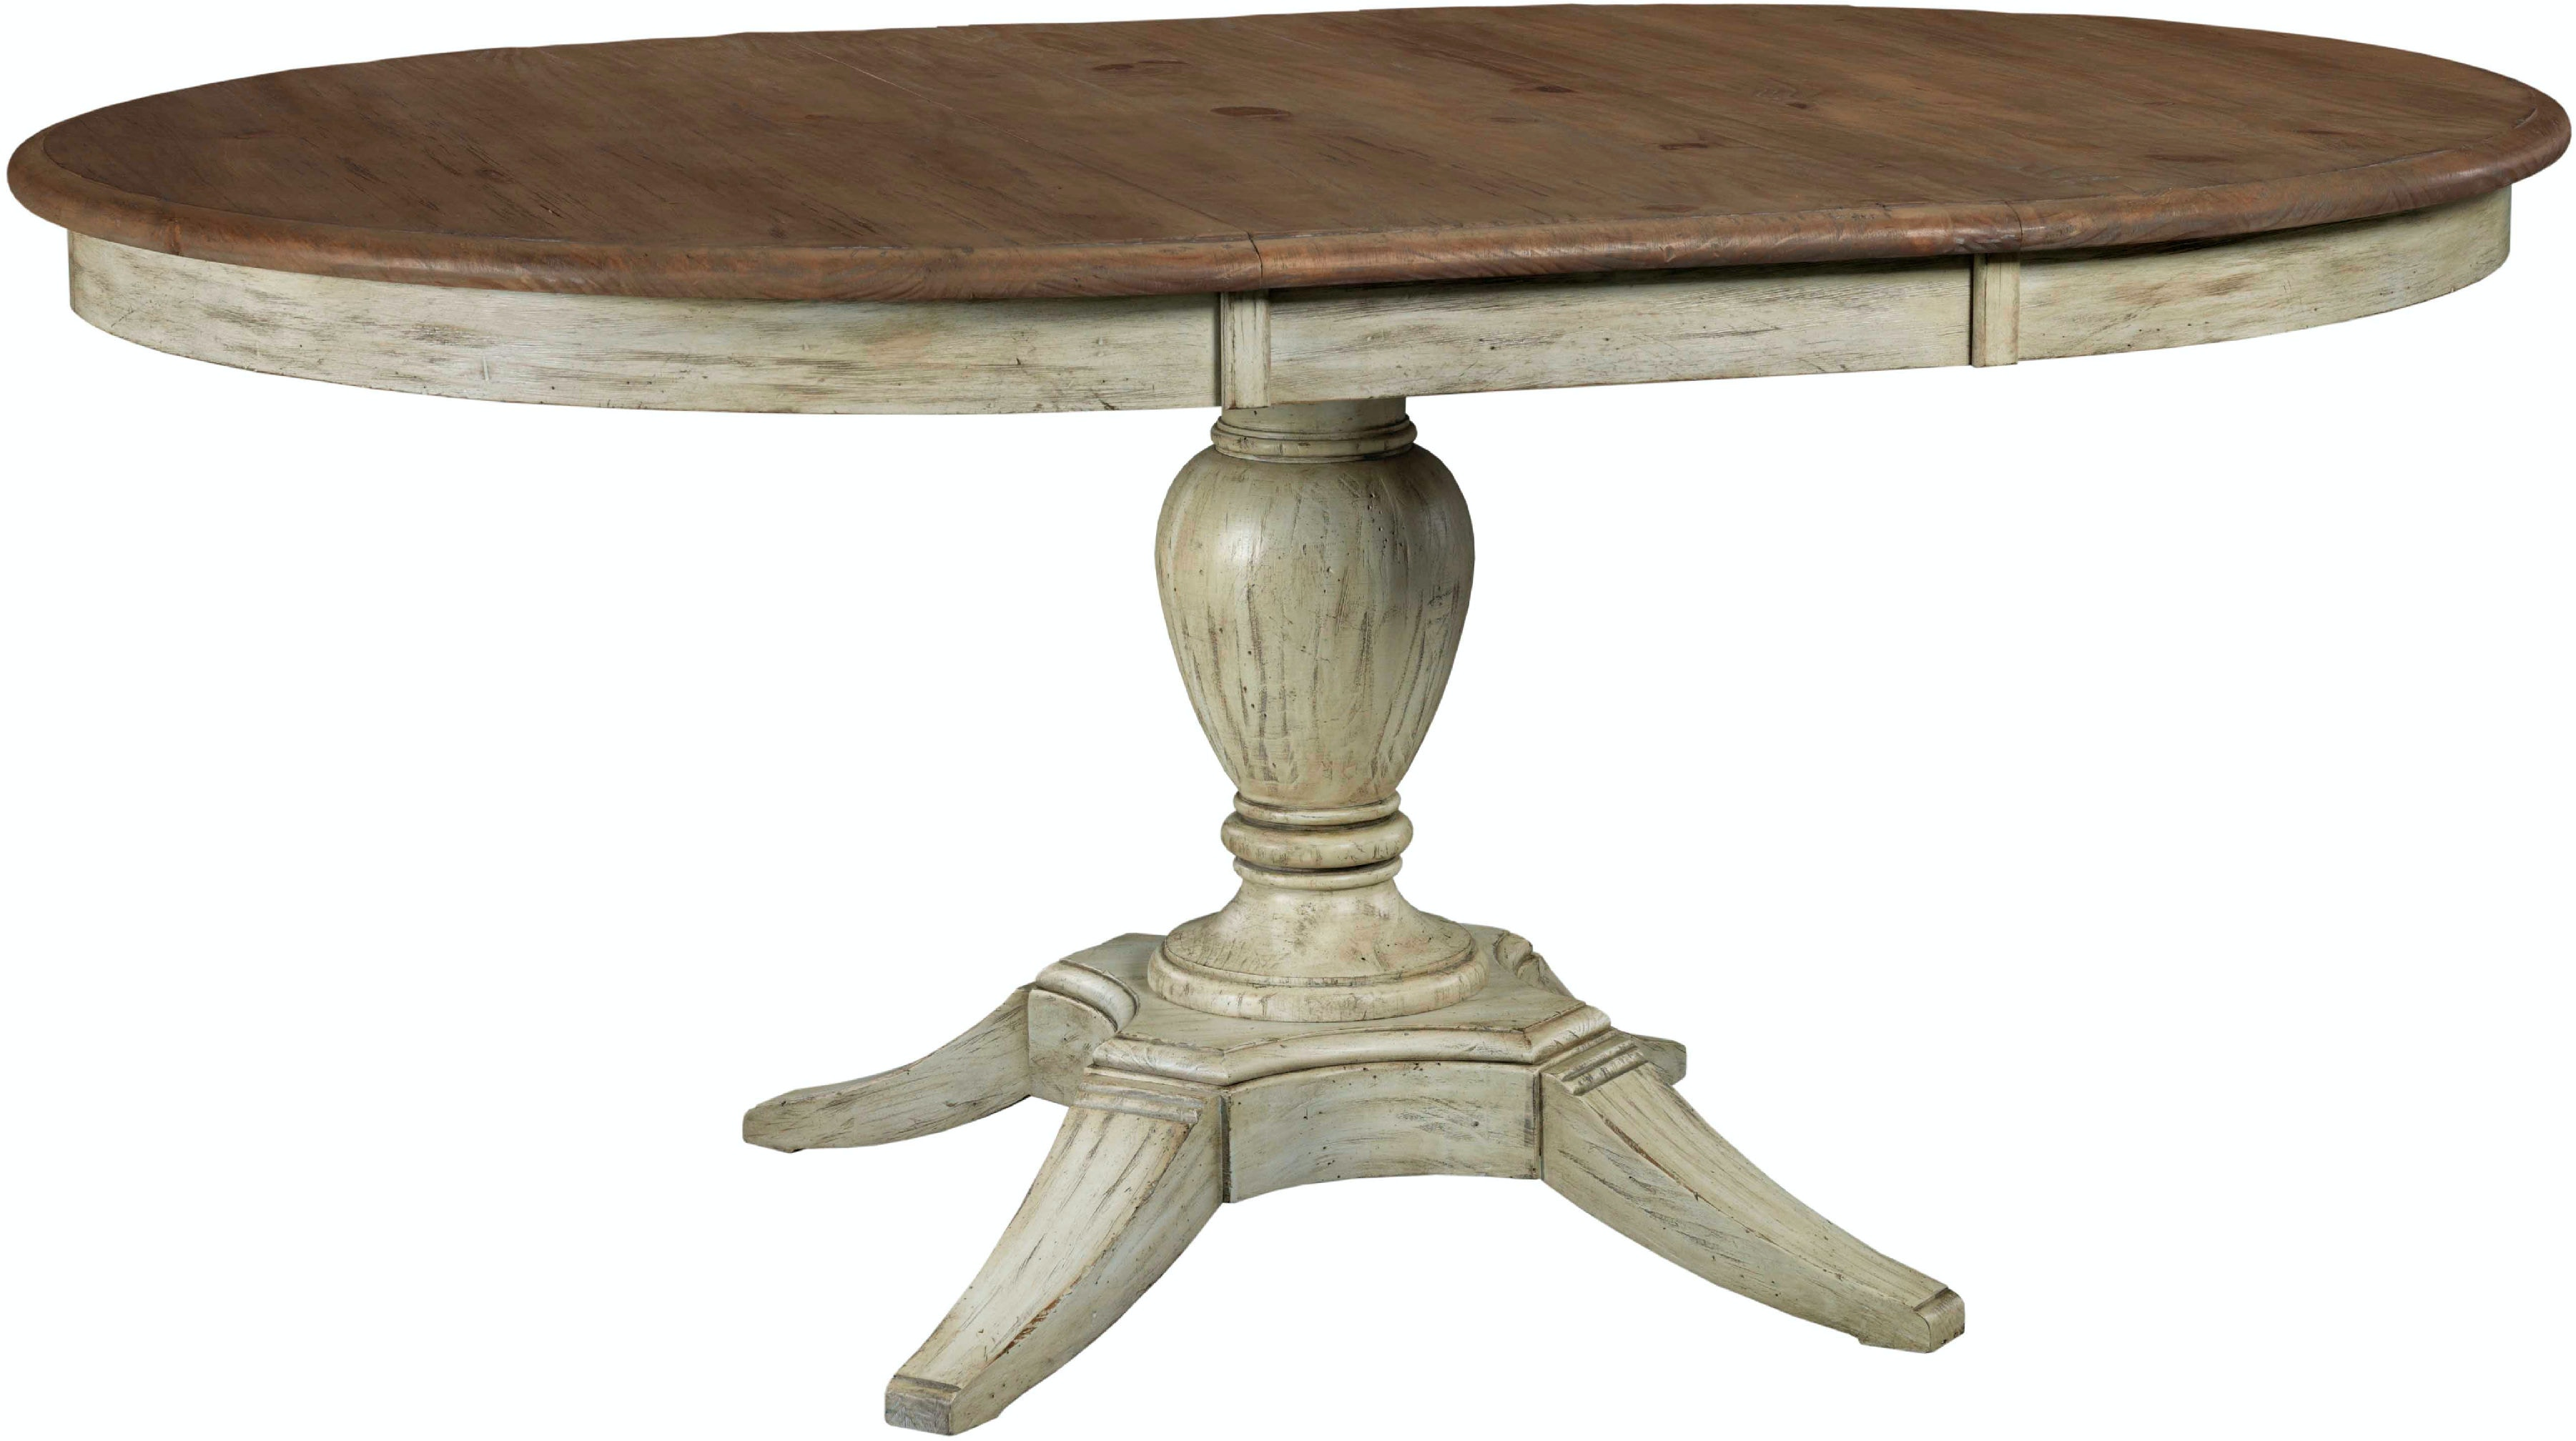 furniture tables - star furniture tx - houston, texas